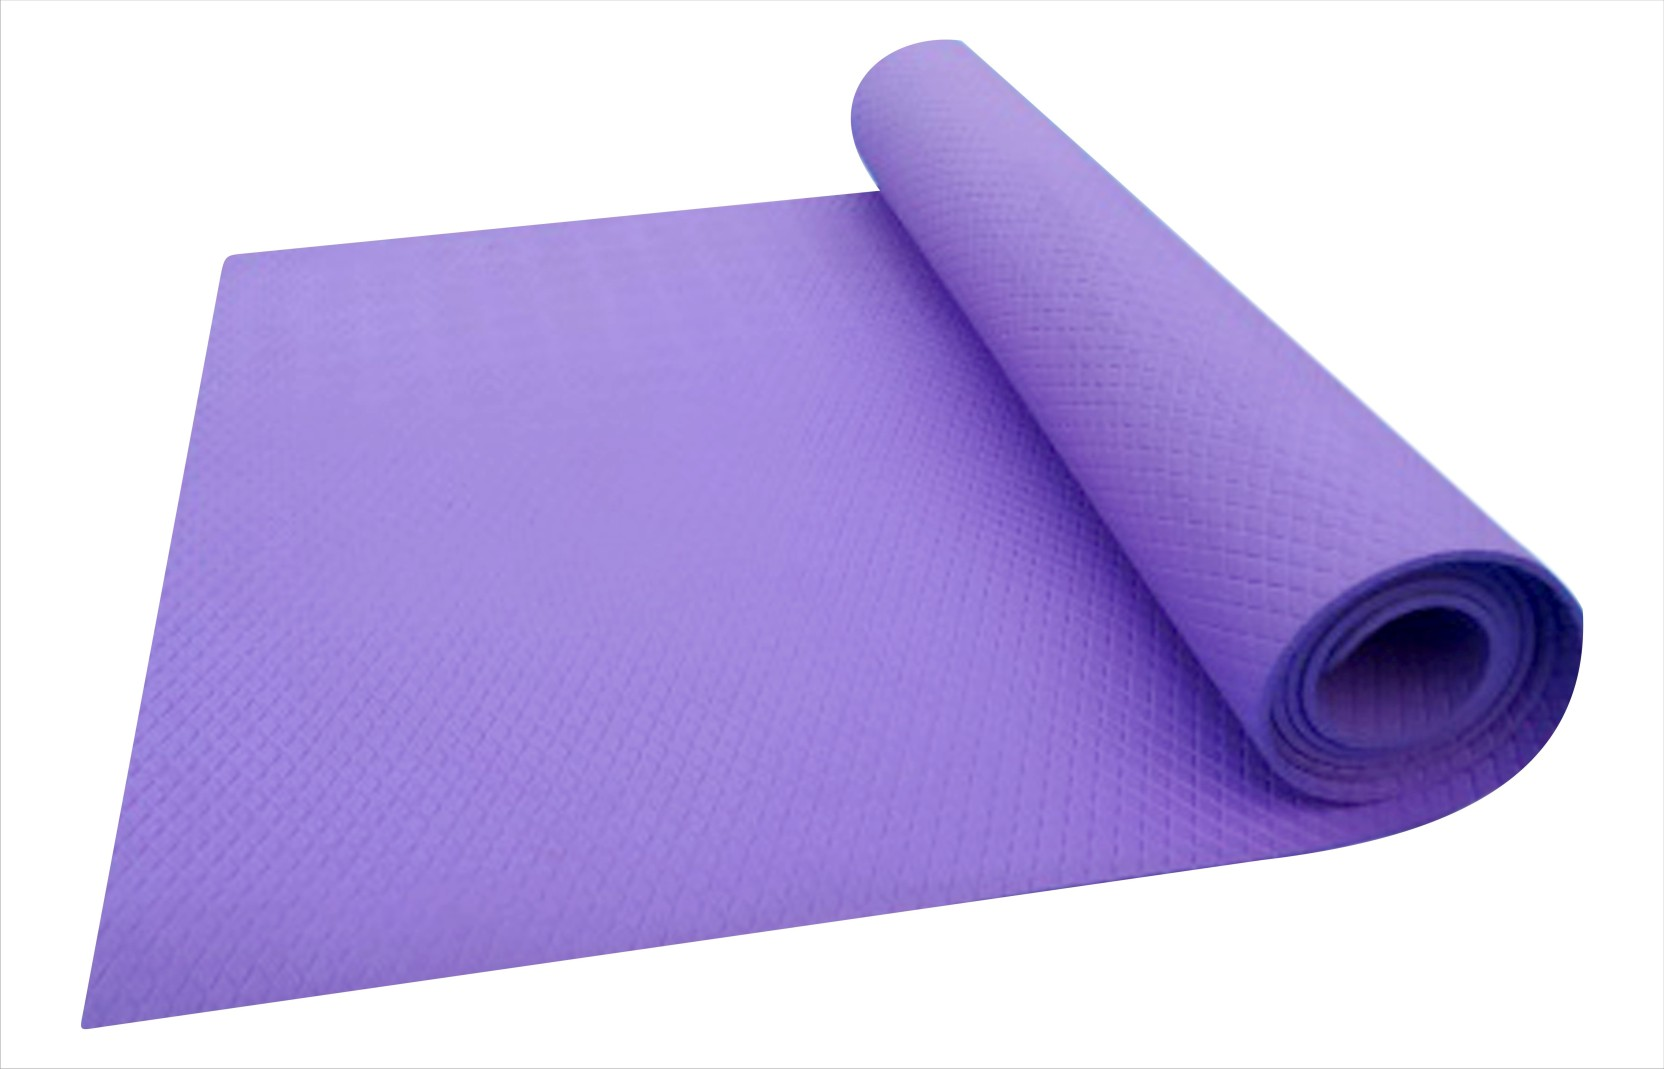 Aerolite Kids Yoga Mat 24 X 56 Purple 6 Mm Yoga Mat Buy